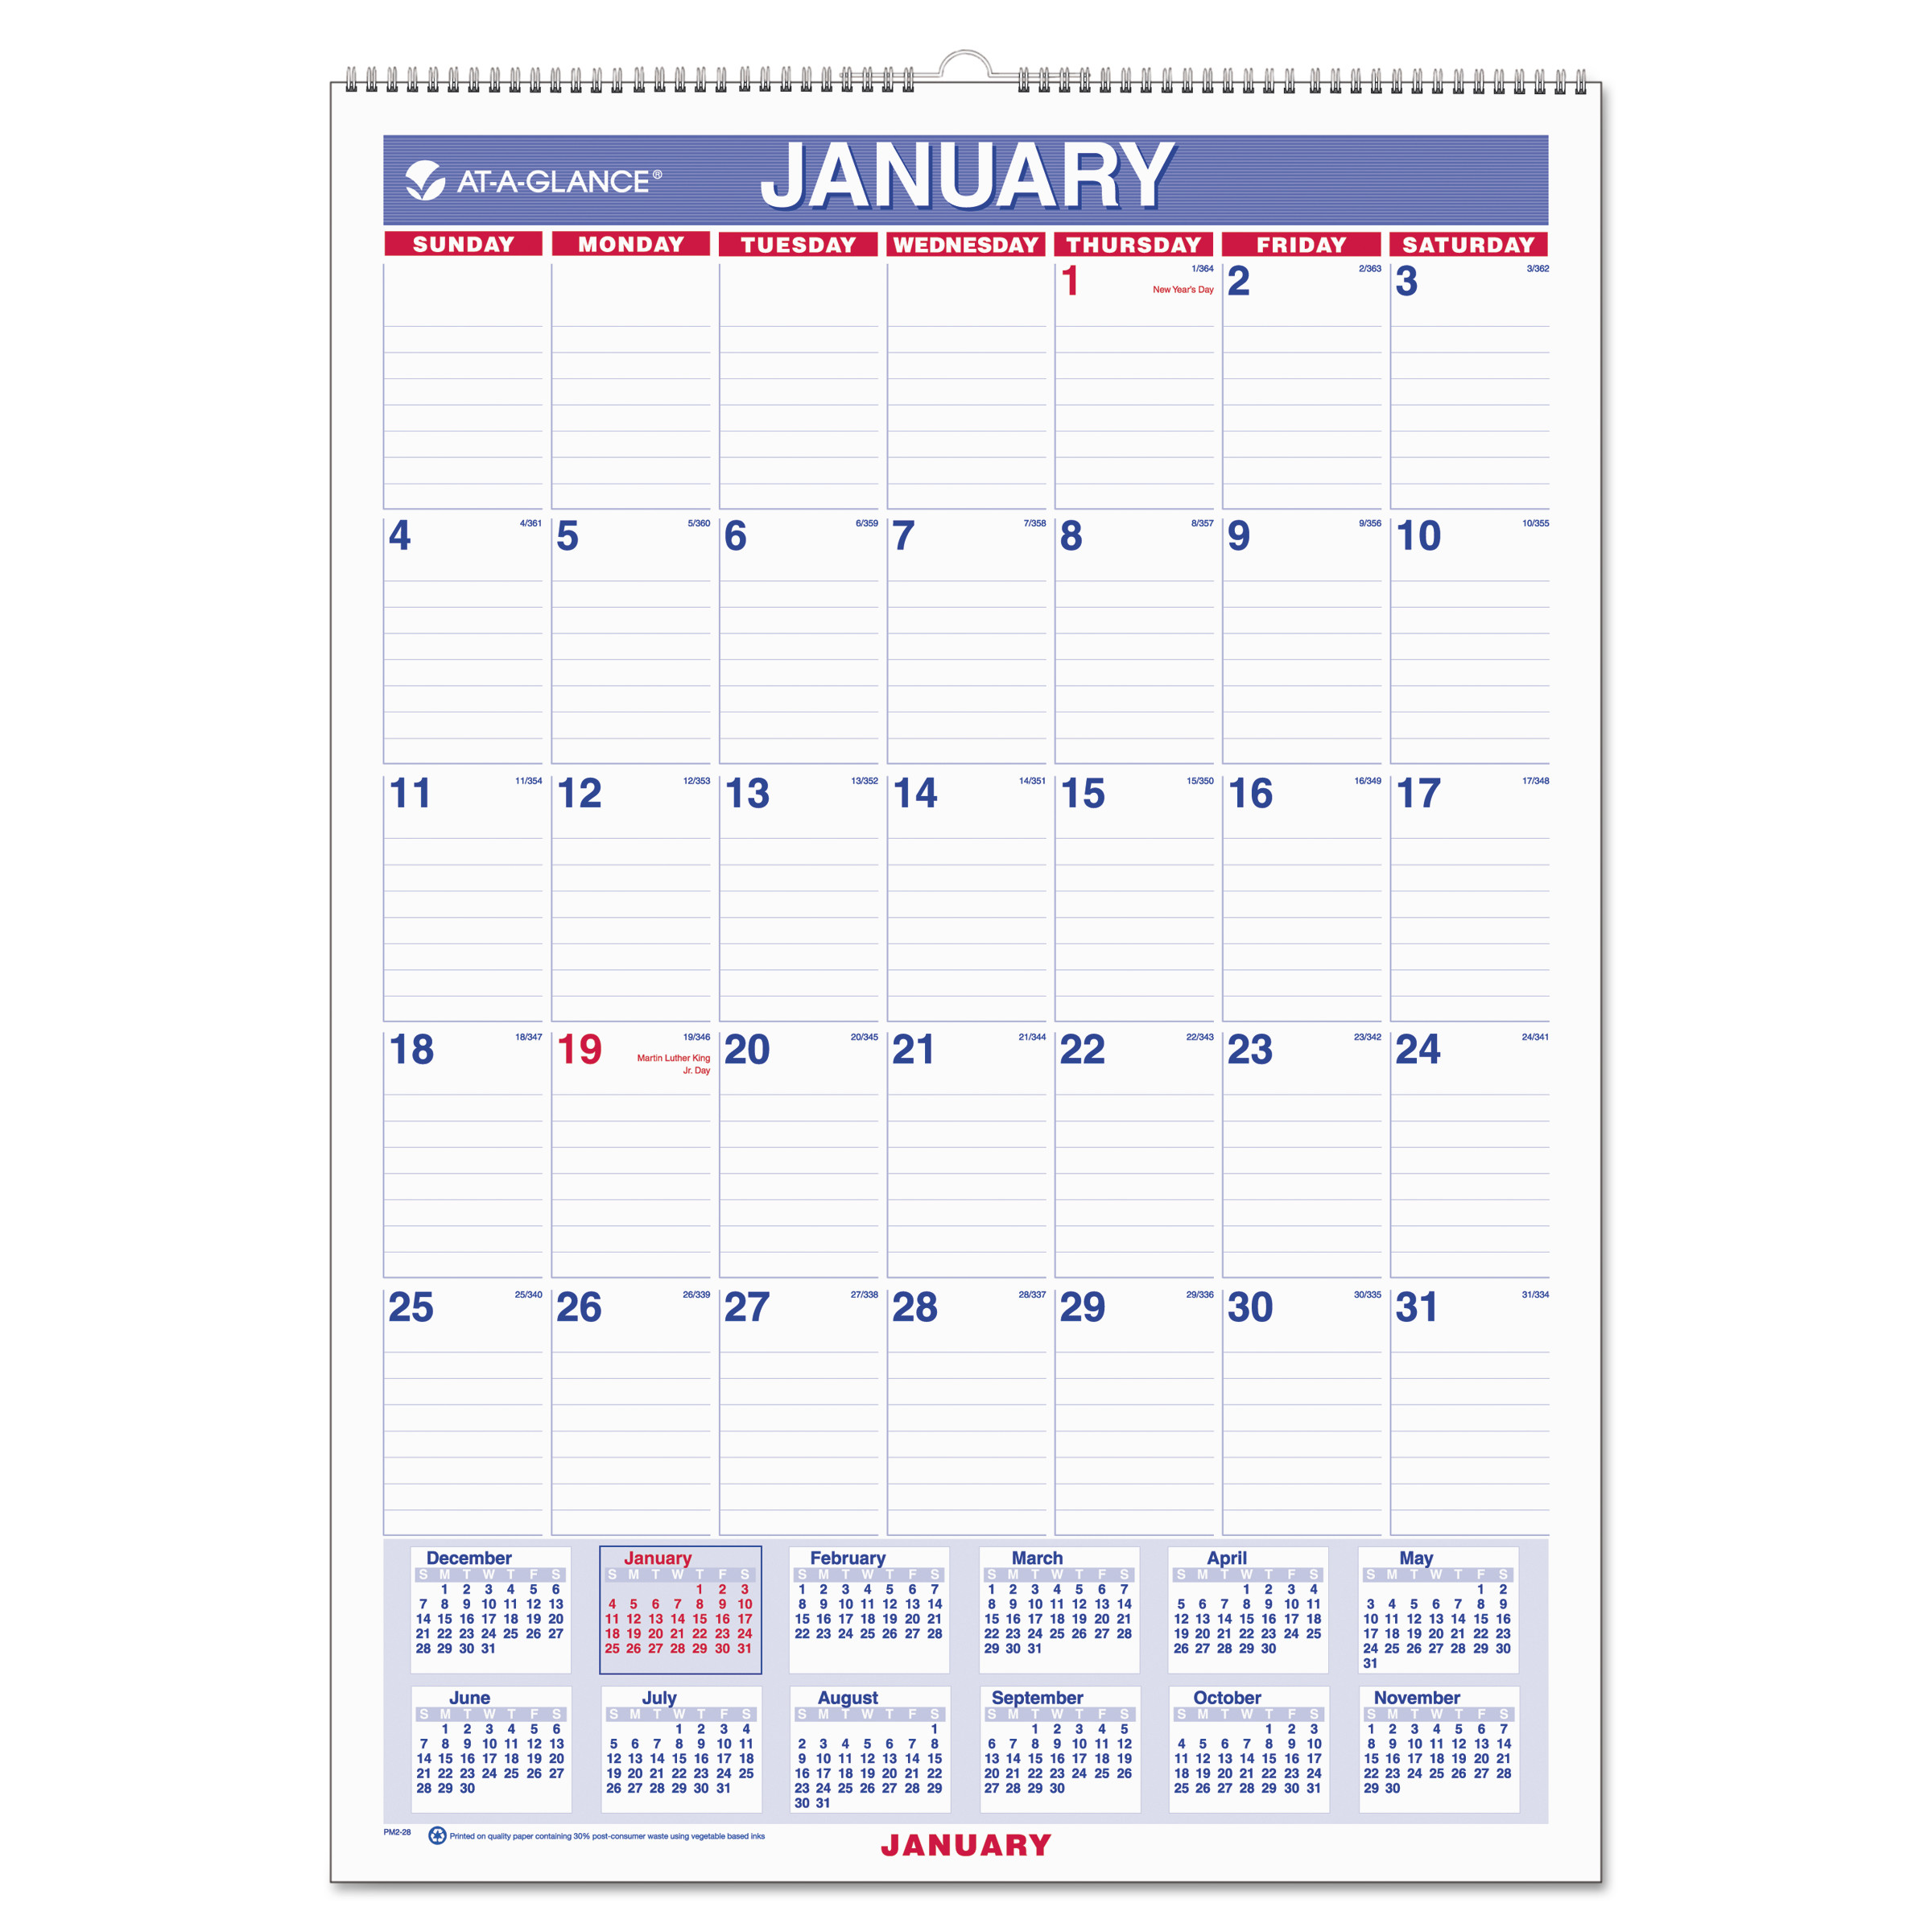 AT-A-GLANCE Monthly Wall Calendar with Ruled Daily Blocks, 12 x 17, White, 2018 by AT-A-GLANCE